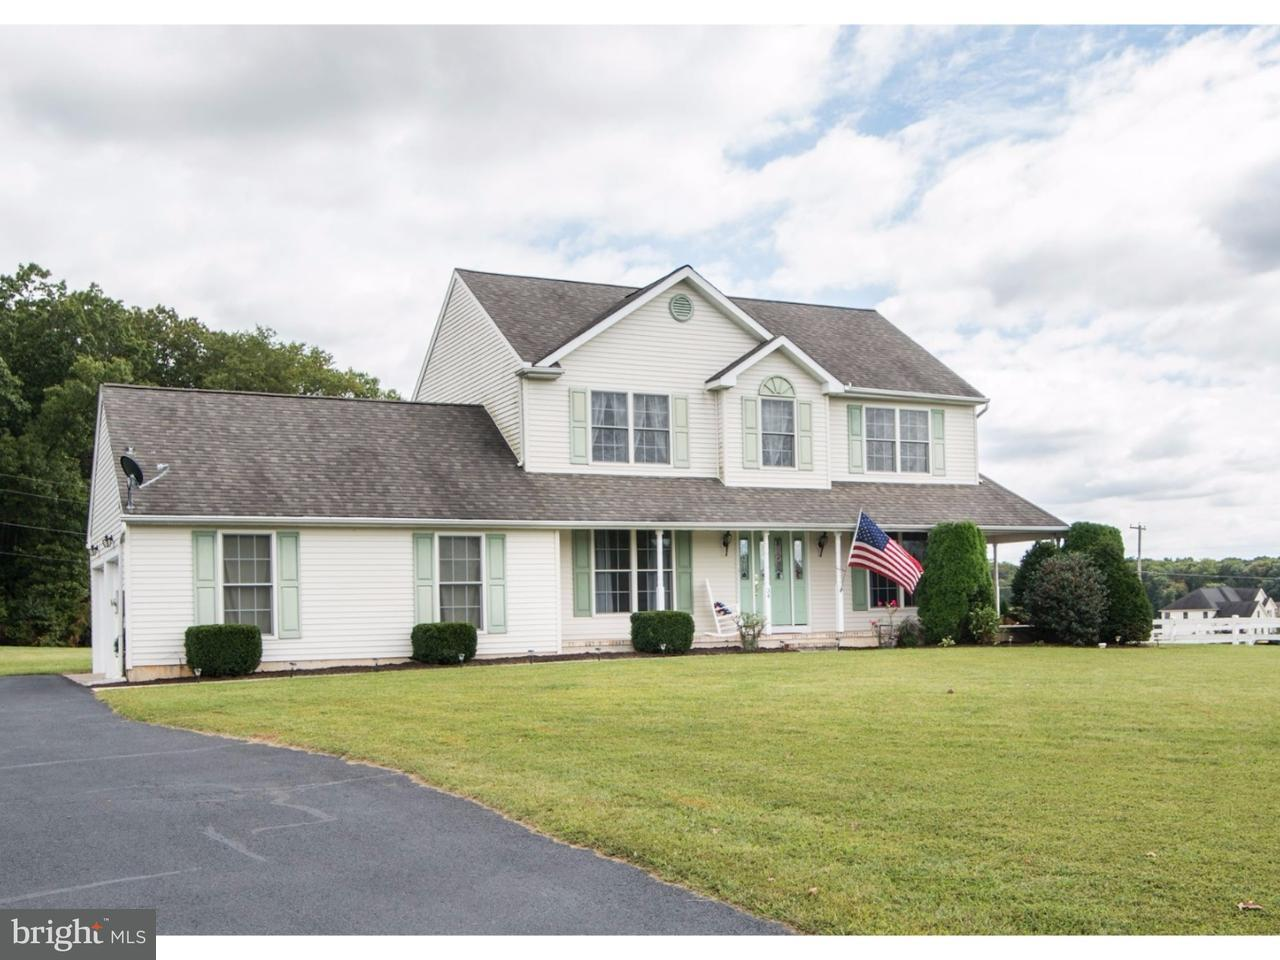 Single Family Home for Sale at 34 QUAIL RIDGE Drive Upper Deerfield Township, New Jersey 08302 United States